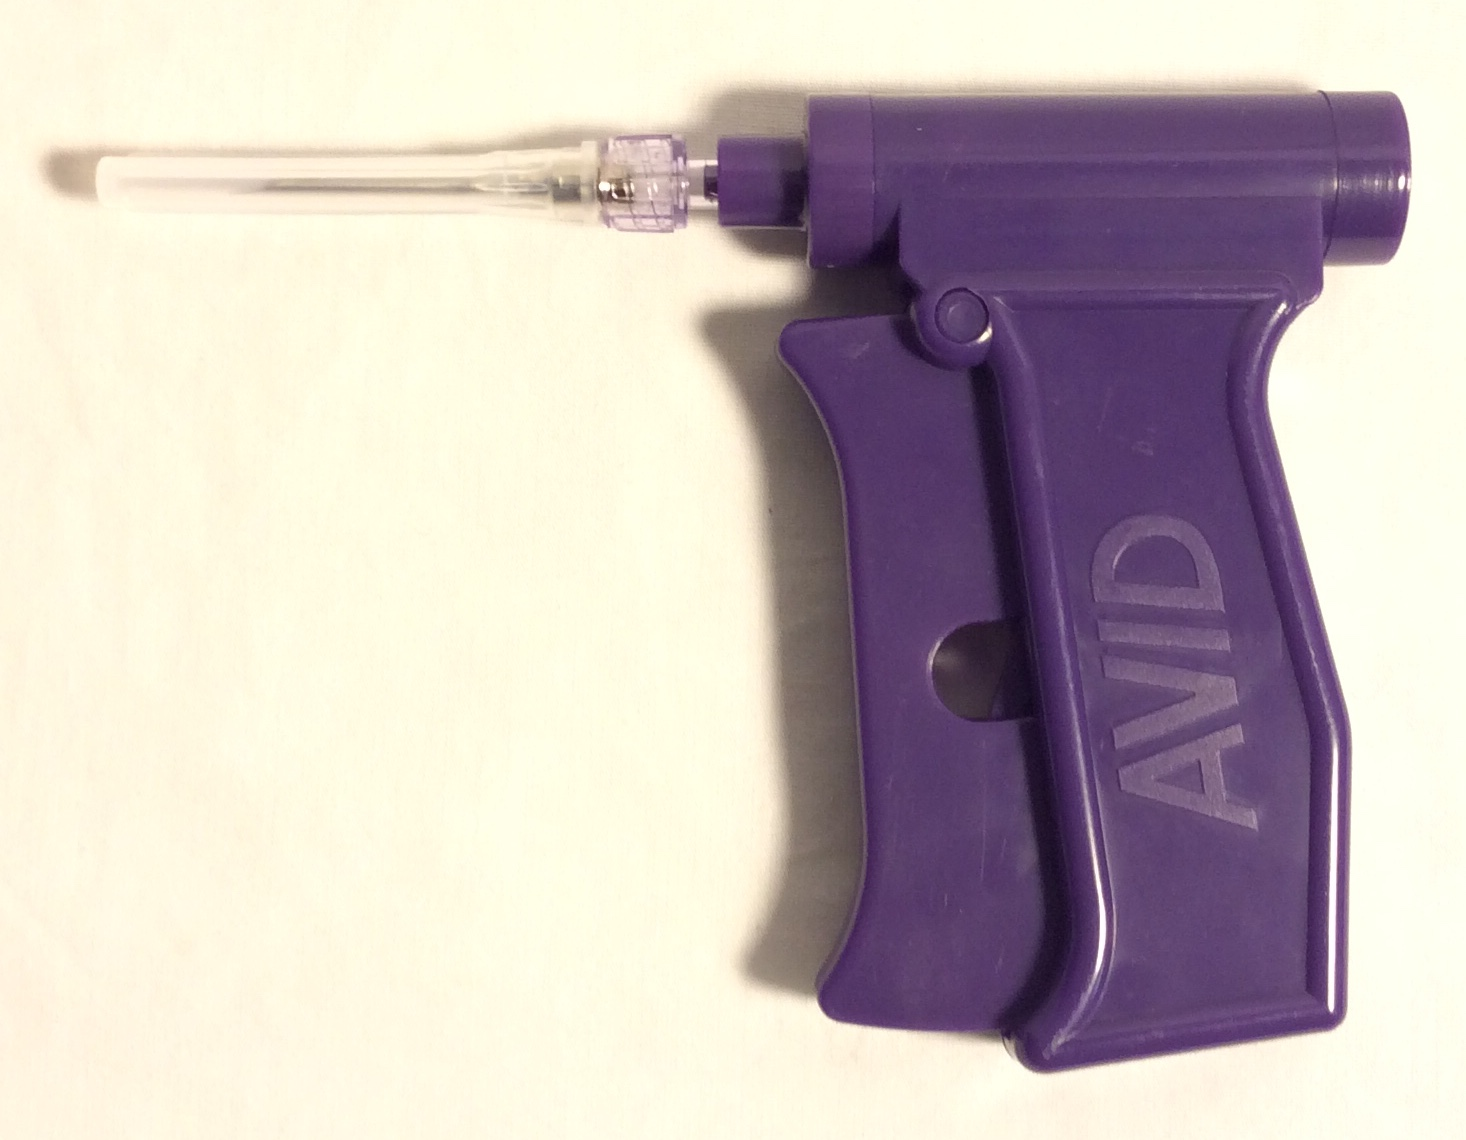 RFID implant guns, purple plastic